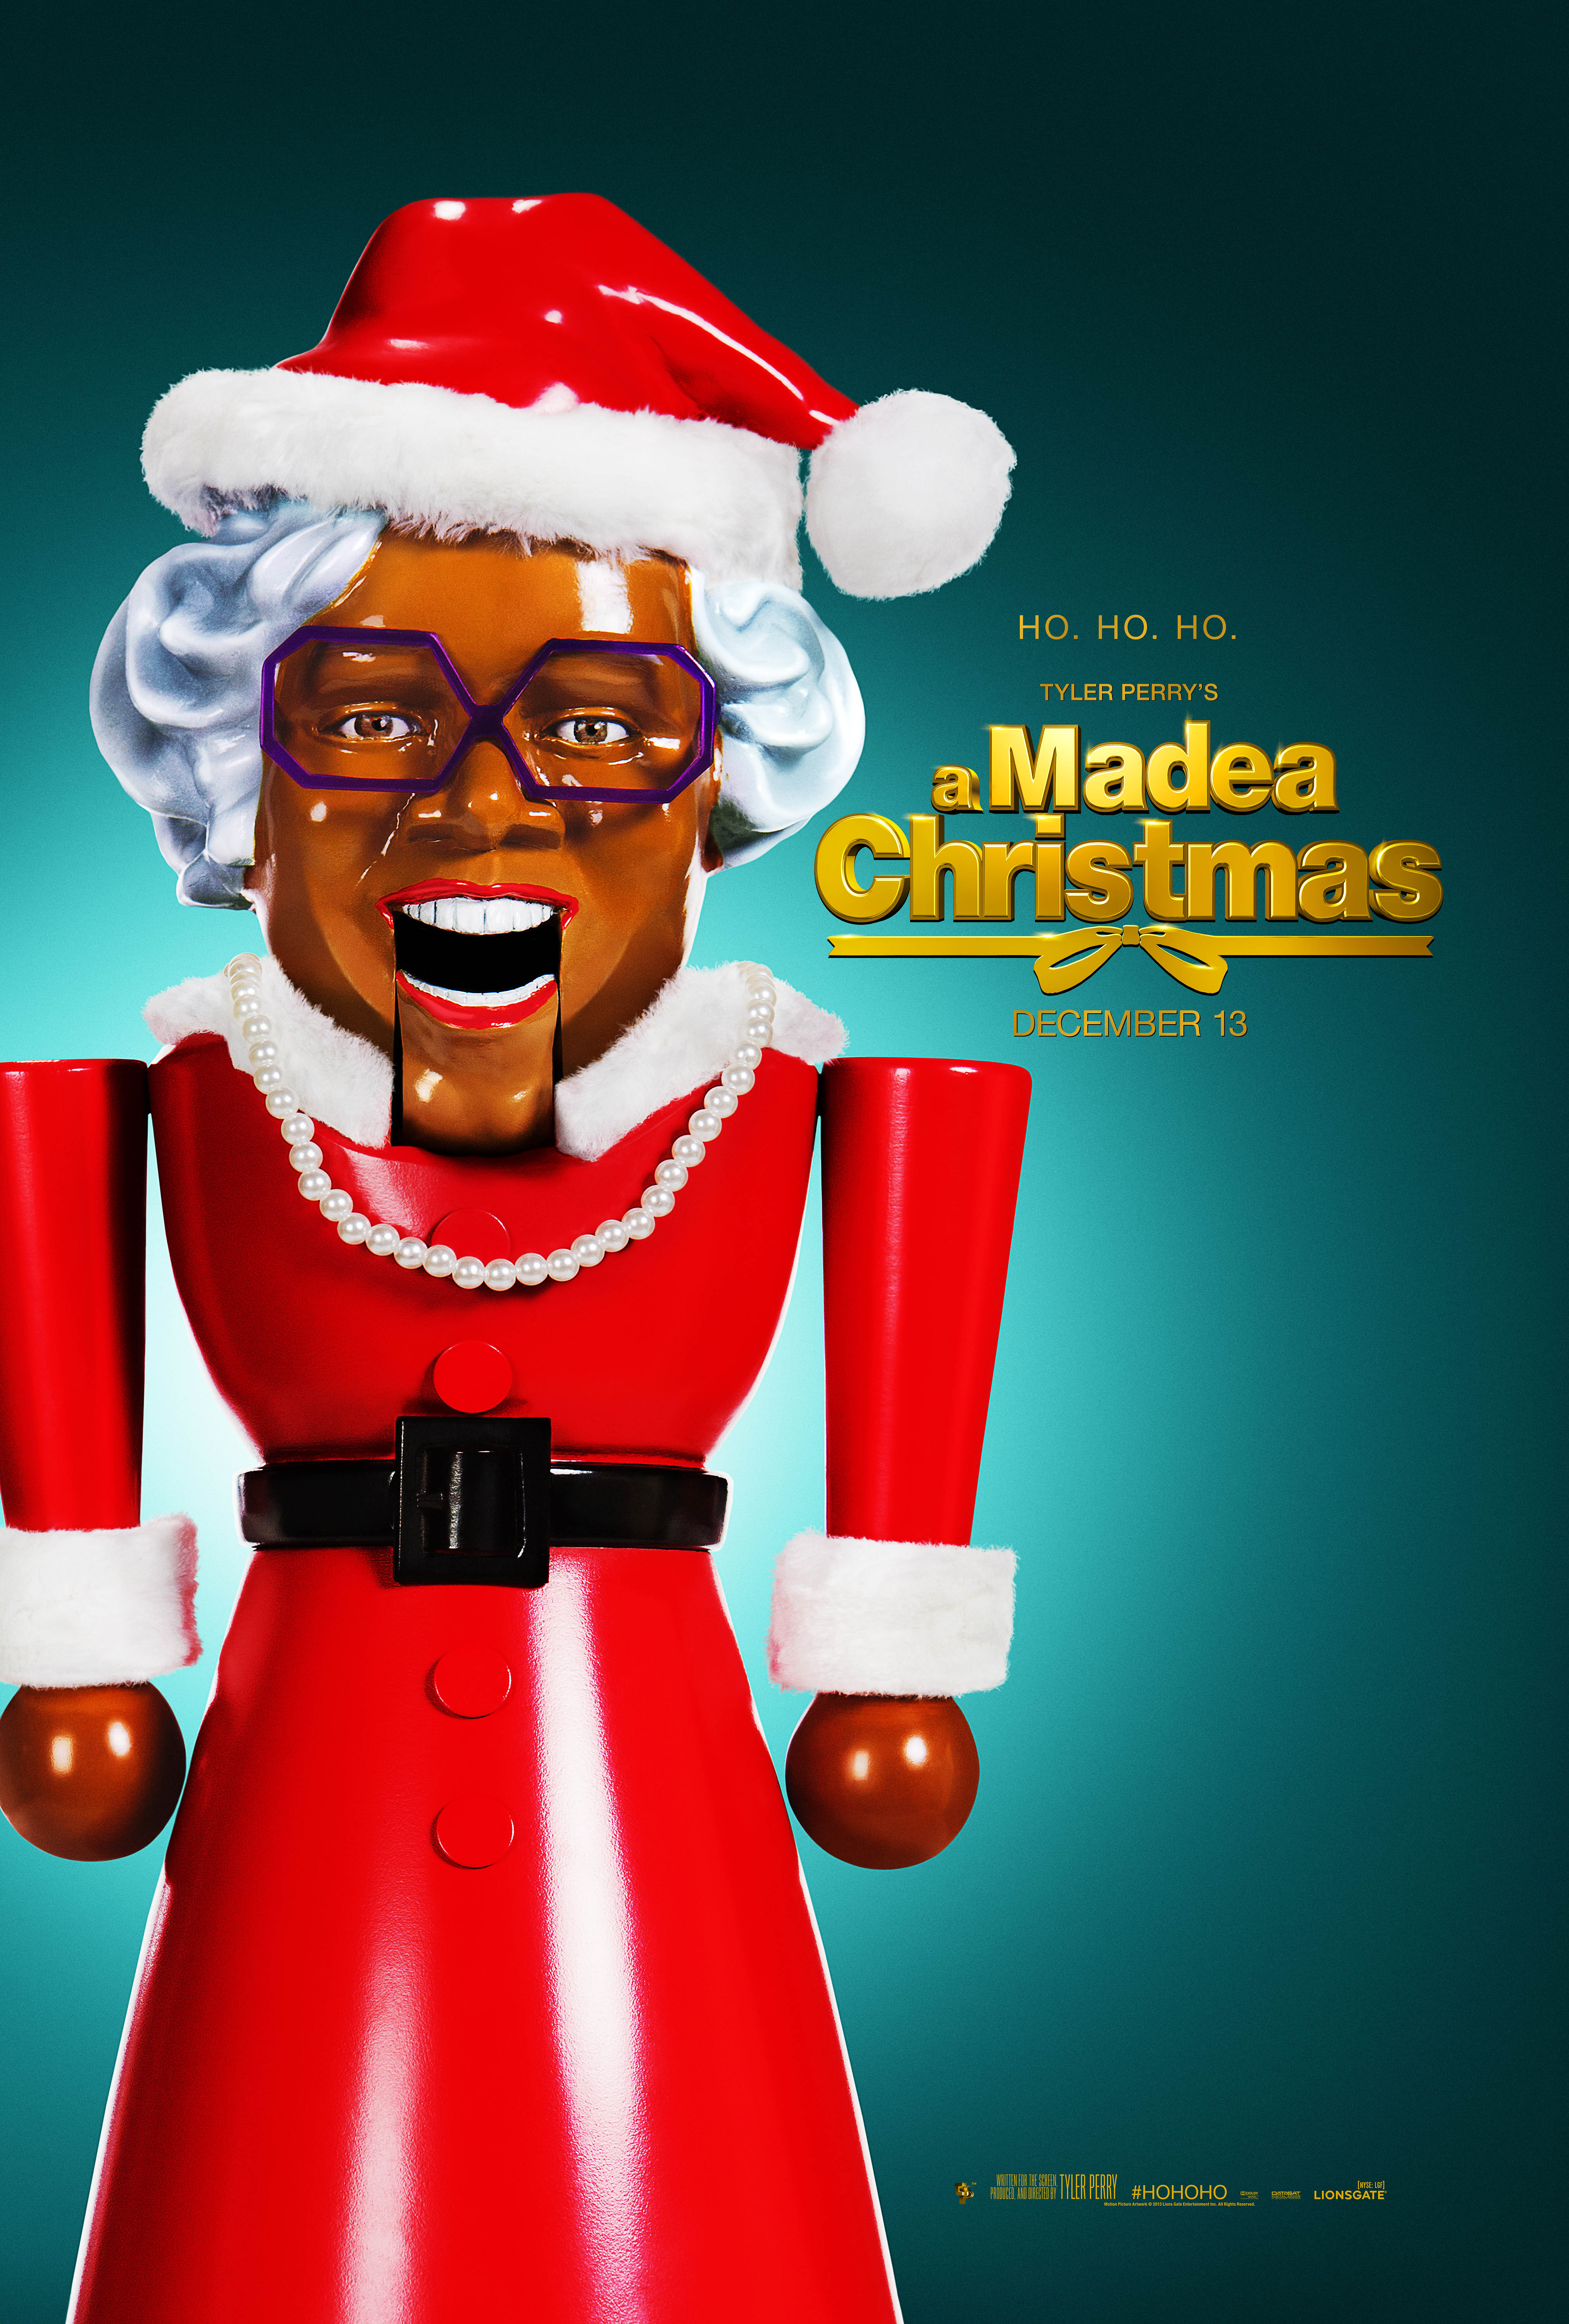 Madea s coming back in tyler perry s a madea christmas